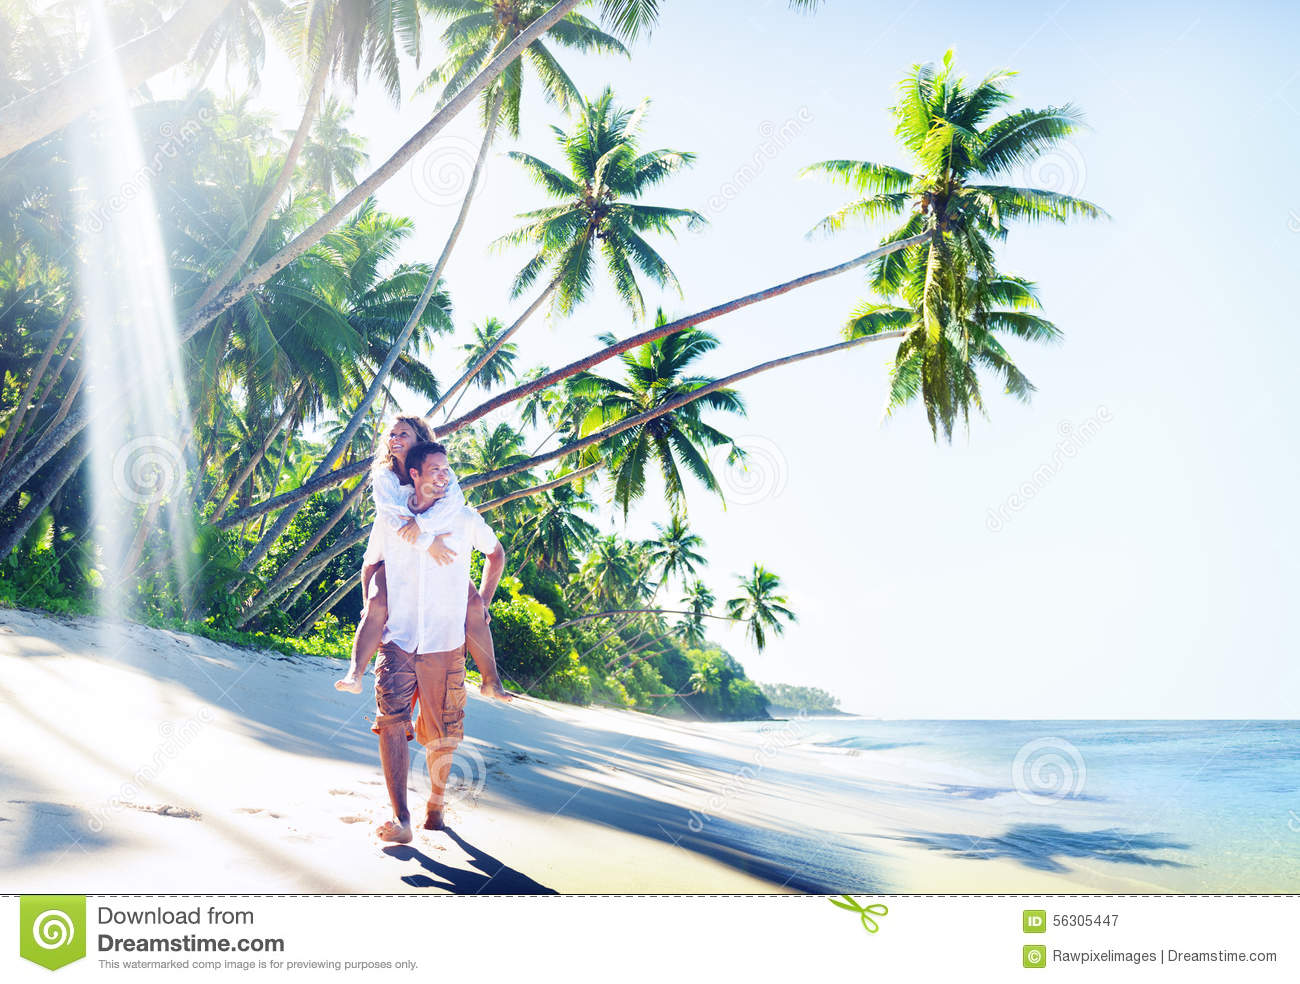 Romantic Pictures Of Tropical Beaches: Couple Honeymoon Tropical Beach Romantic Concept Stock